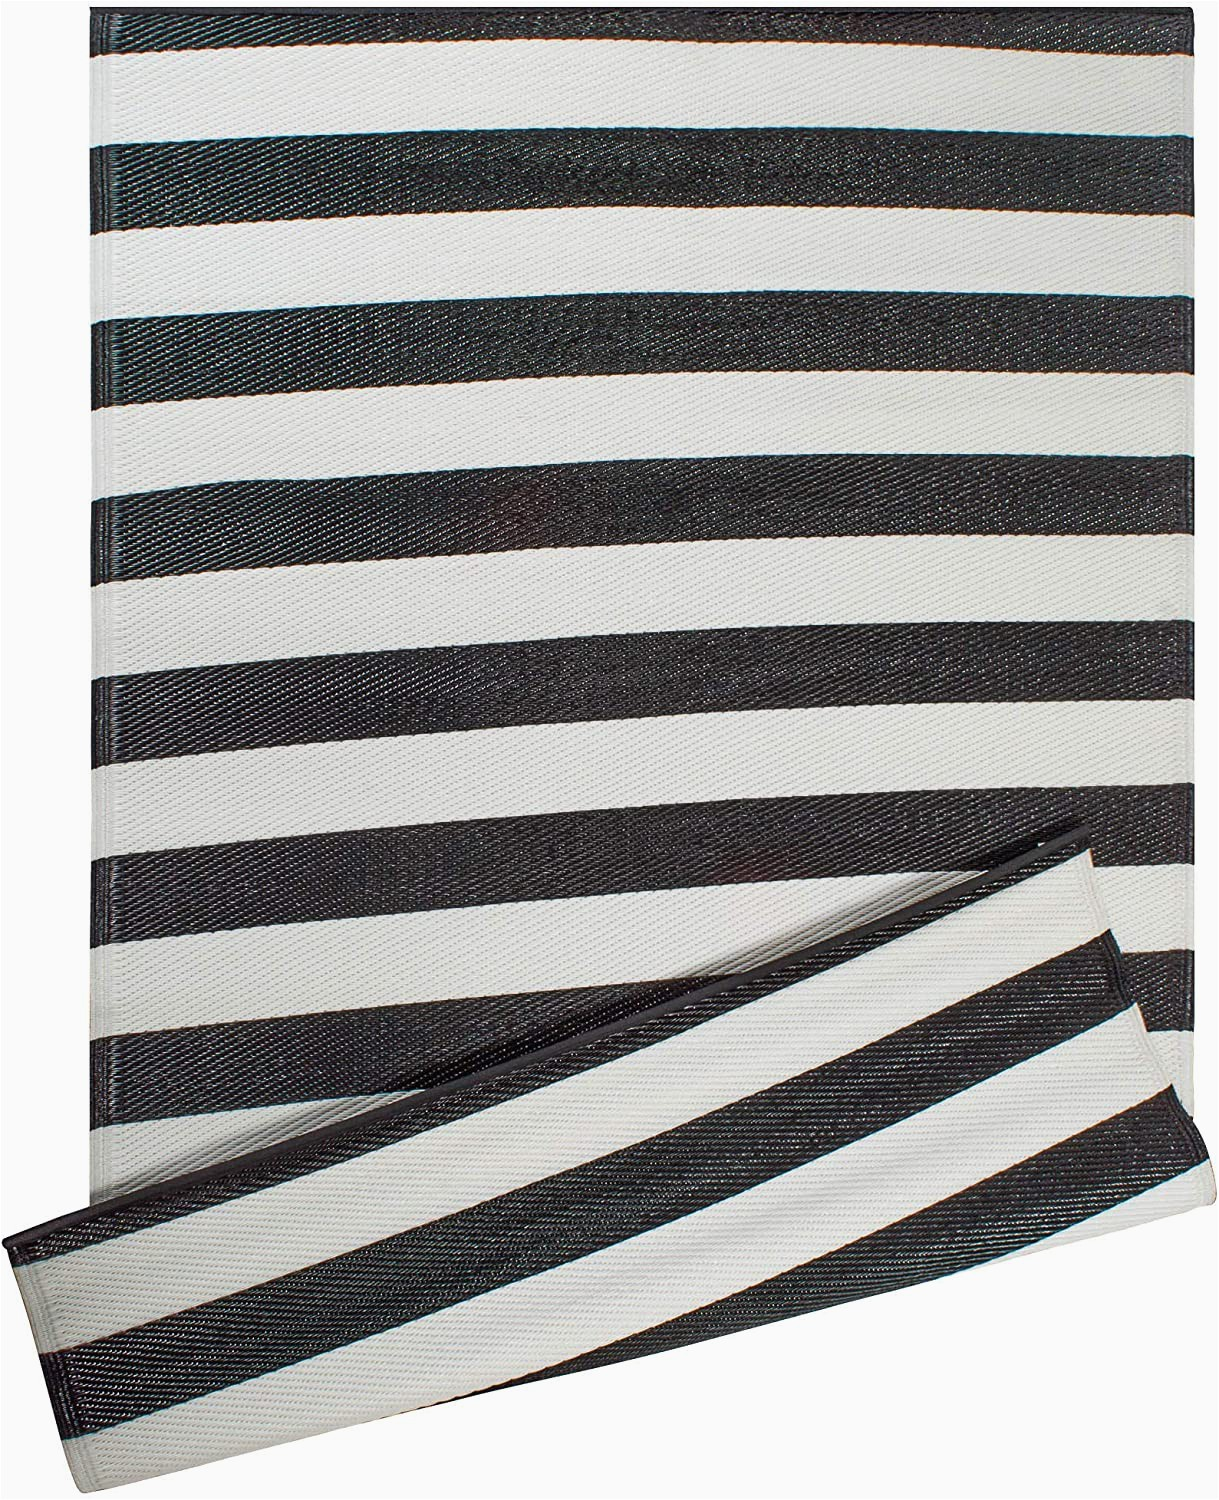 Black and White Woven area Rug Dii Reversible Indoor Woven Striped Outdoor Rug 4x6 White & Black